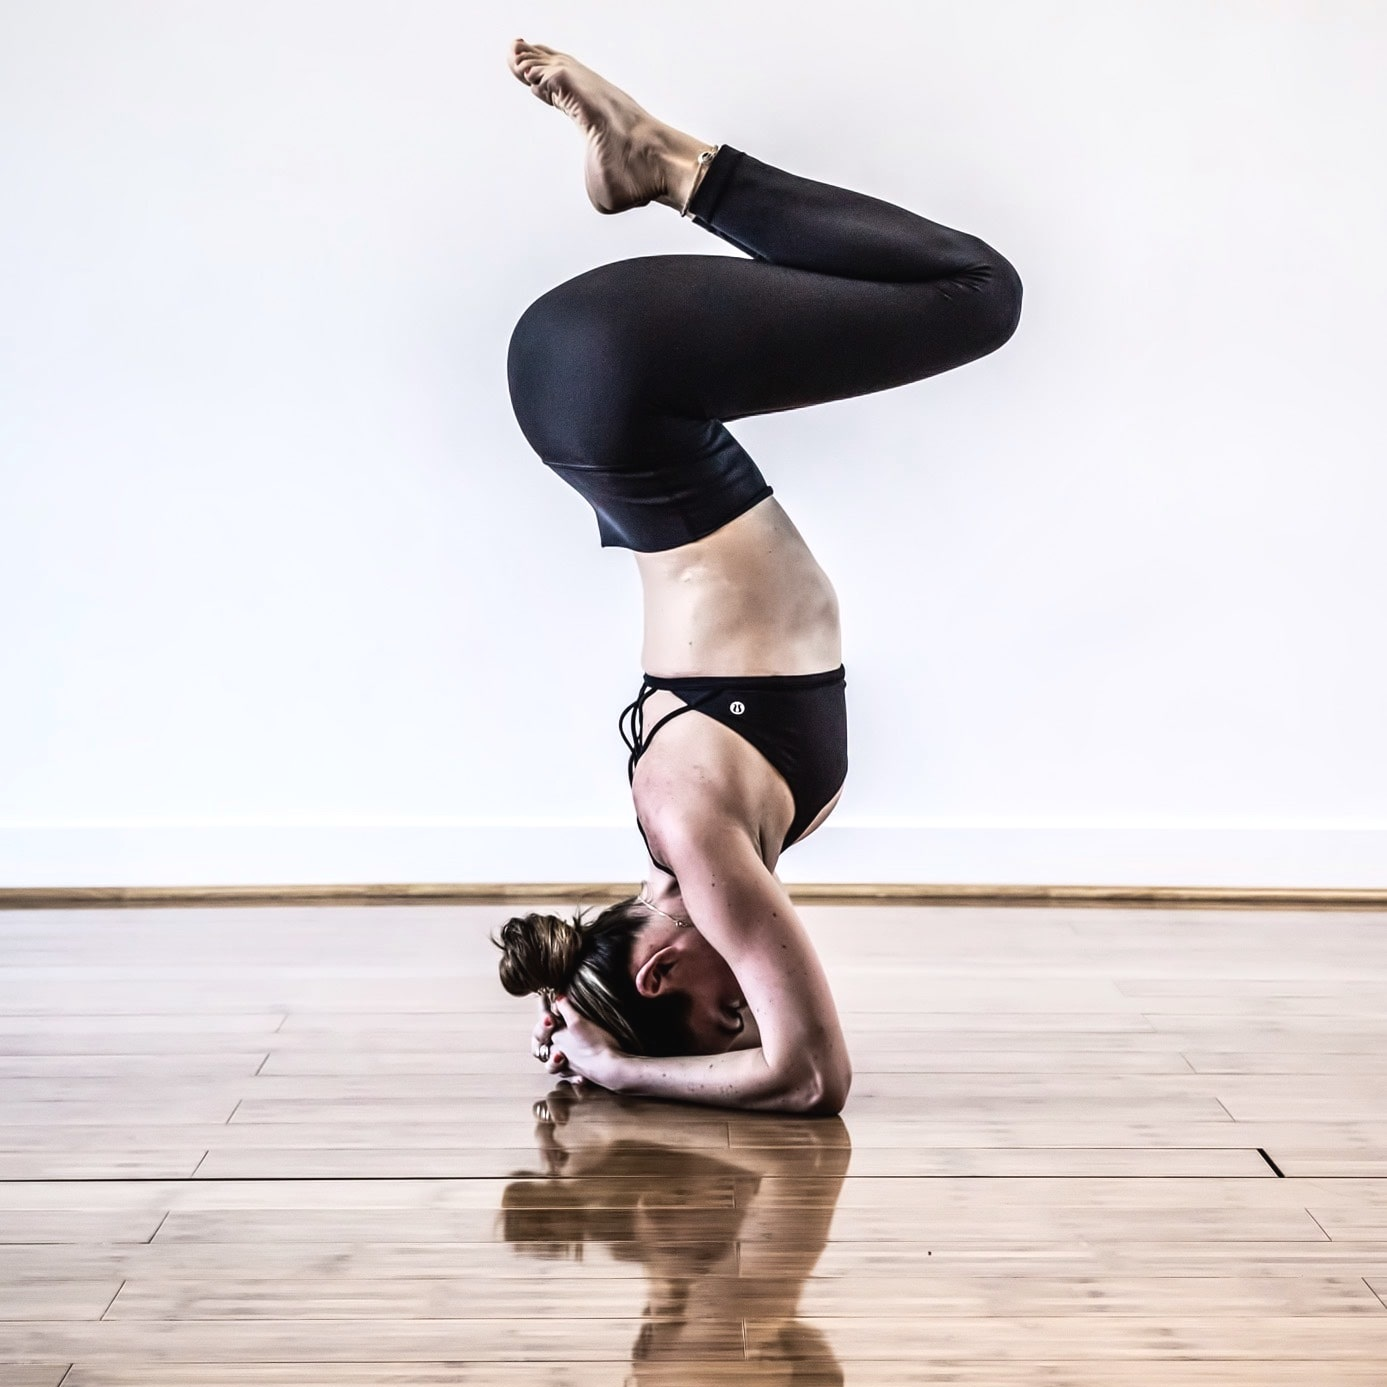 YOU PRACTICE EVERY DAY - It seems like you're doing everything right. You know the techniques to get into your arm balances and you're practicing it everyday. But it's not getting you anywhere - and even if there is progress, it's taking too much time. Sound familiar?Sadly, practicing that arm balance pose over and over again will not get you far. Getting your body